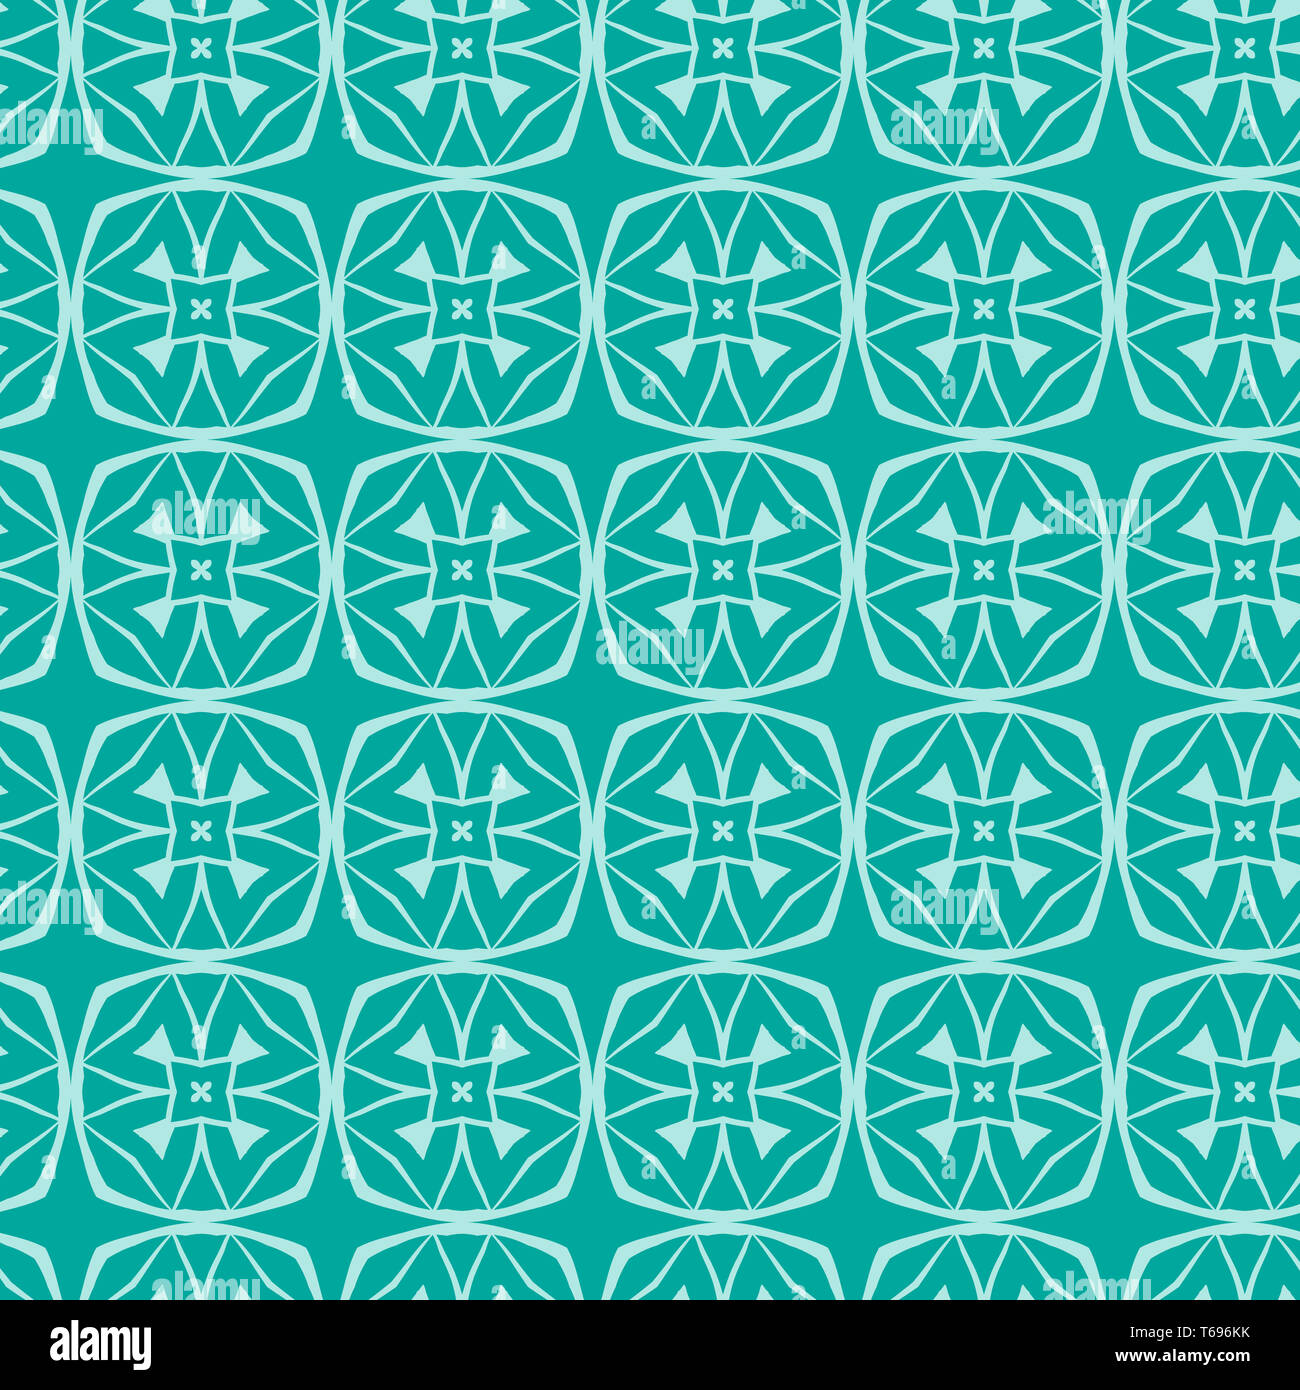 Tribal art ethnic seamless pattern. Boho print. Ethno ornament - Stock Image